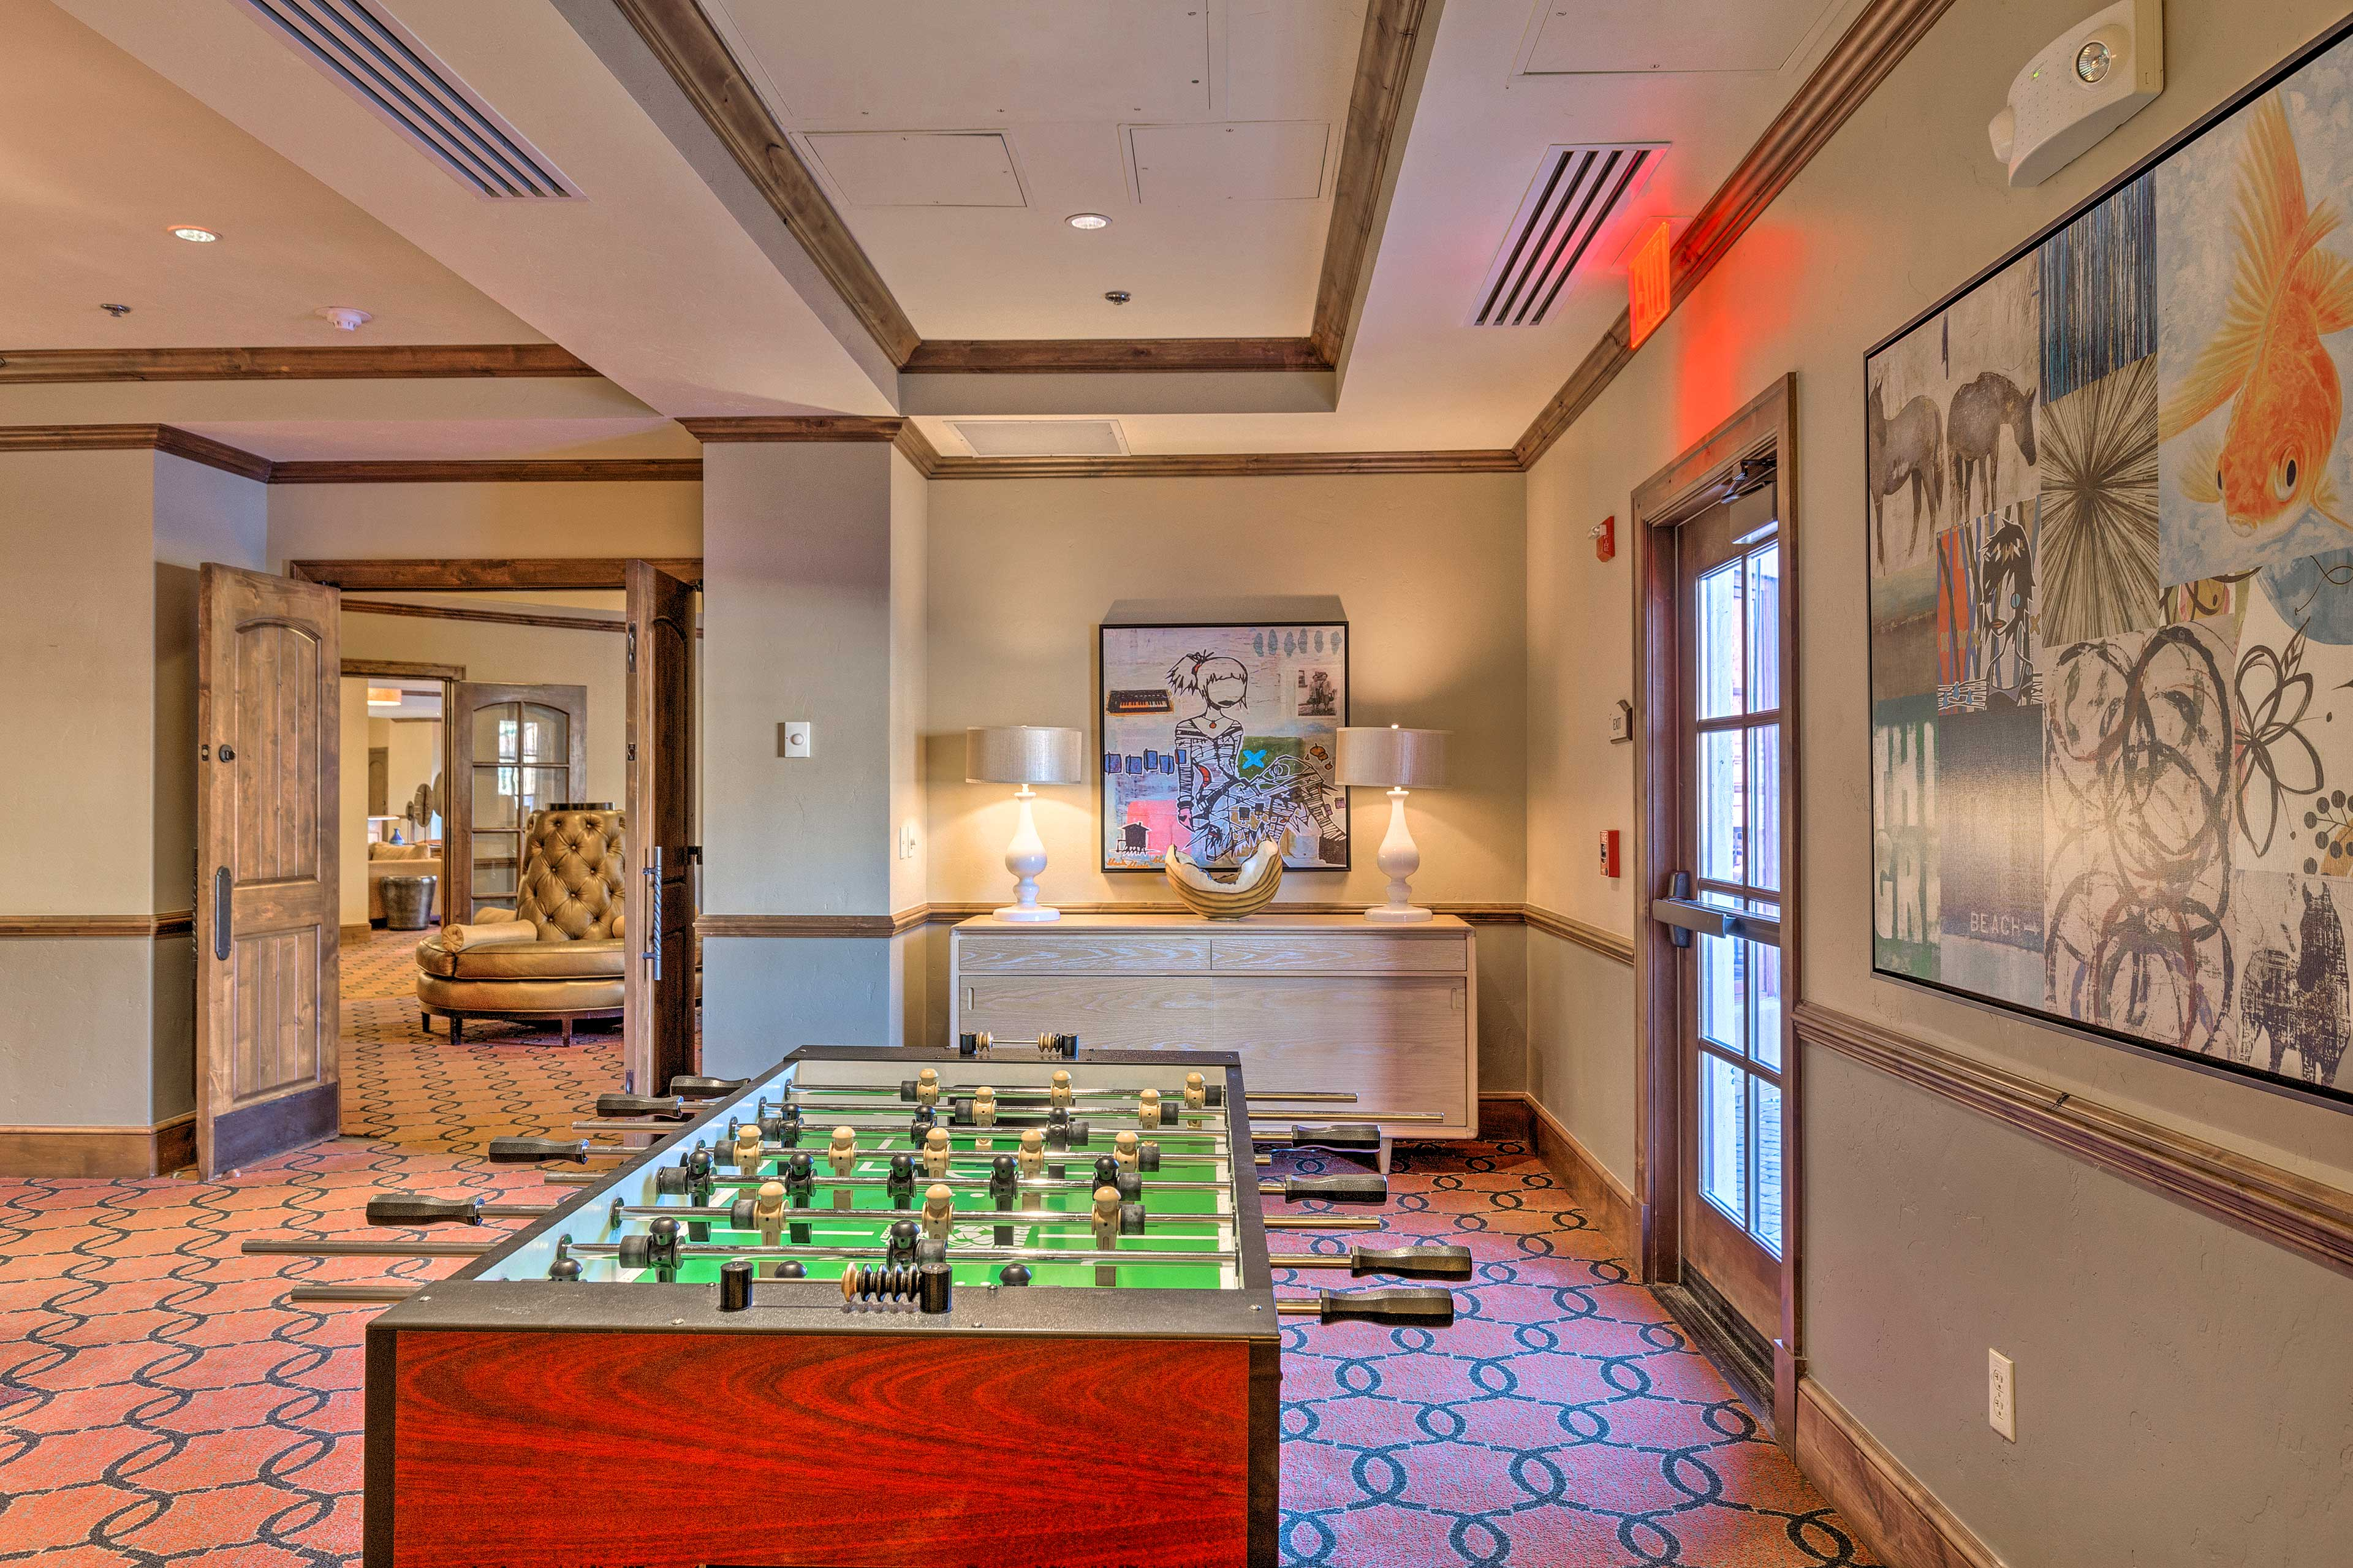 Head down to the clubhouse to enjoy on-site perks, like this Foosball table!